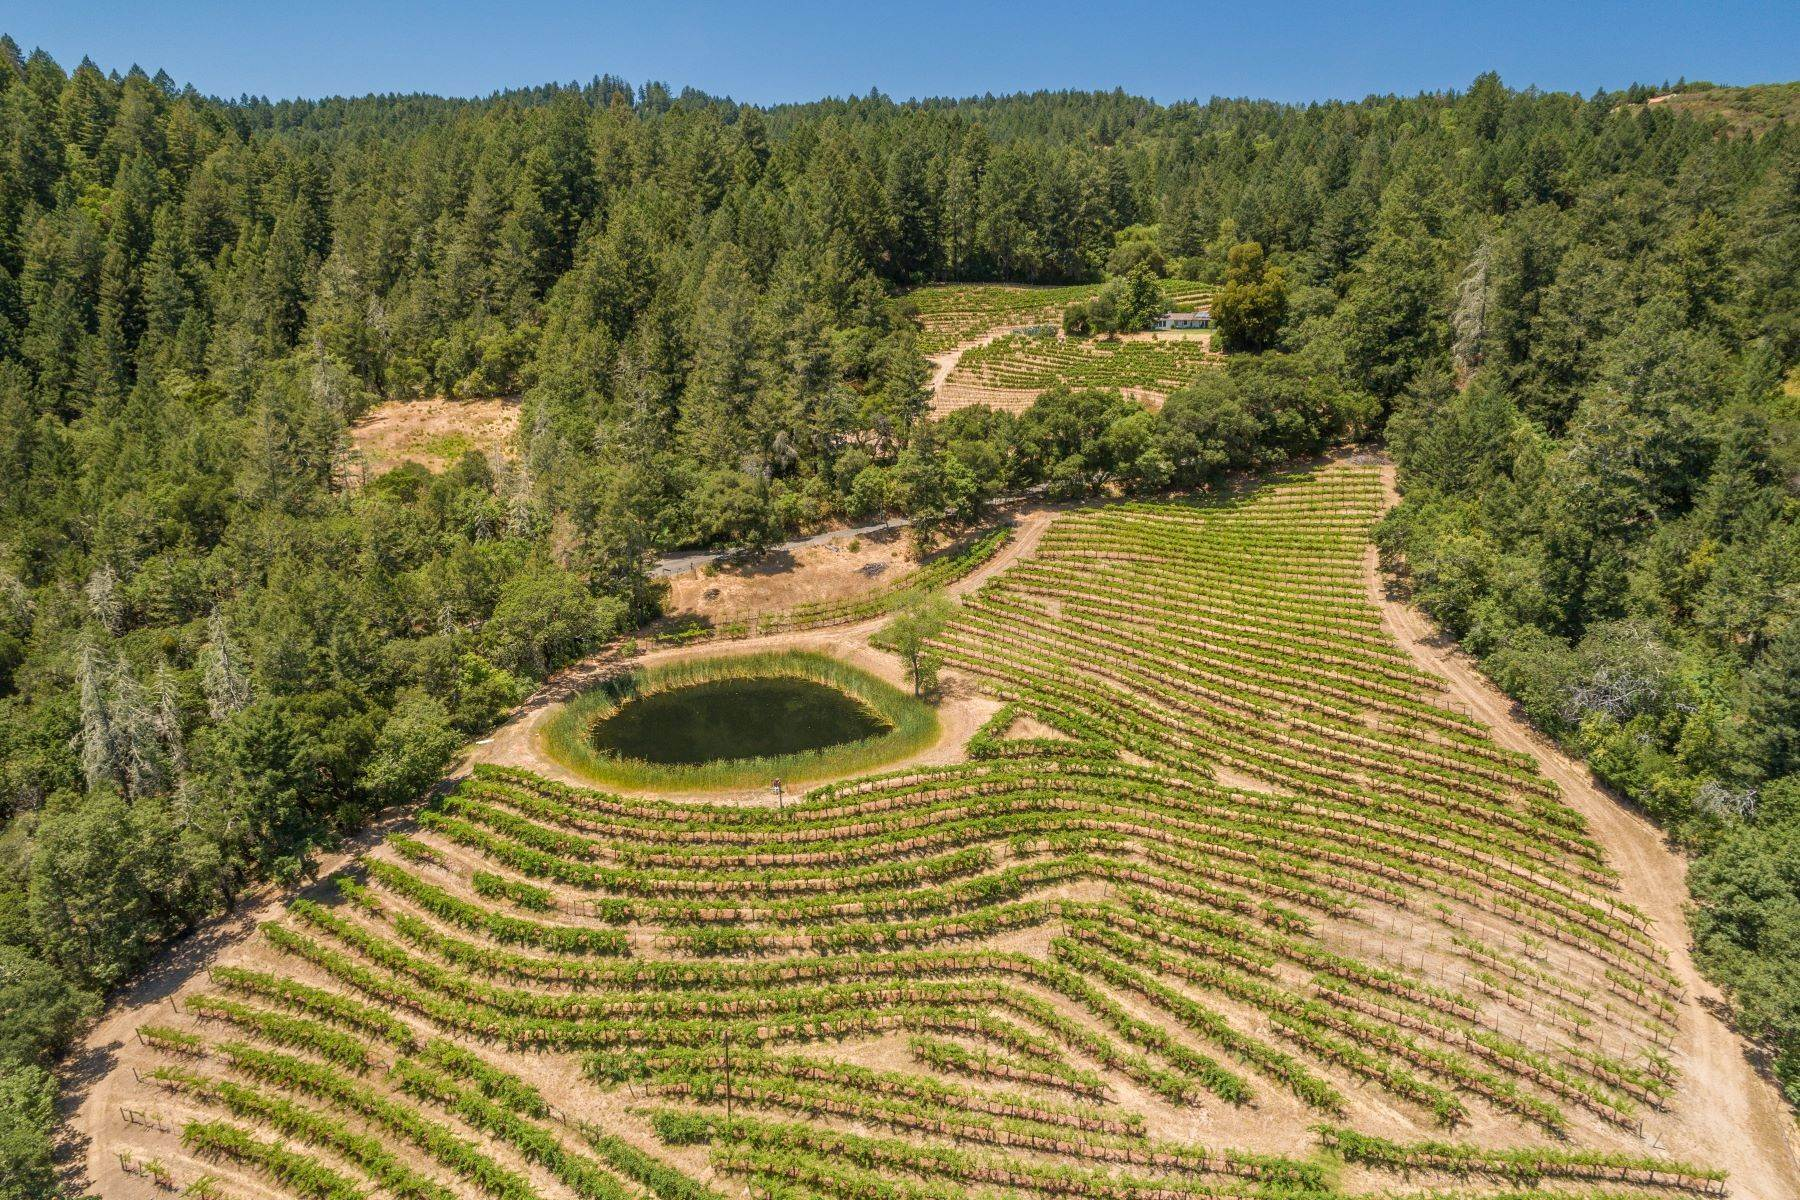 Terreno por un Venta en St. Helena Vineyard View 000 Spring Mountain Rd - 022-260-003 St. Helena, California 94574 Estados Unidos